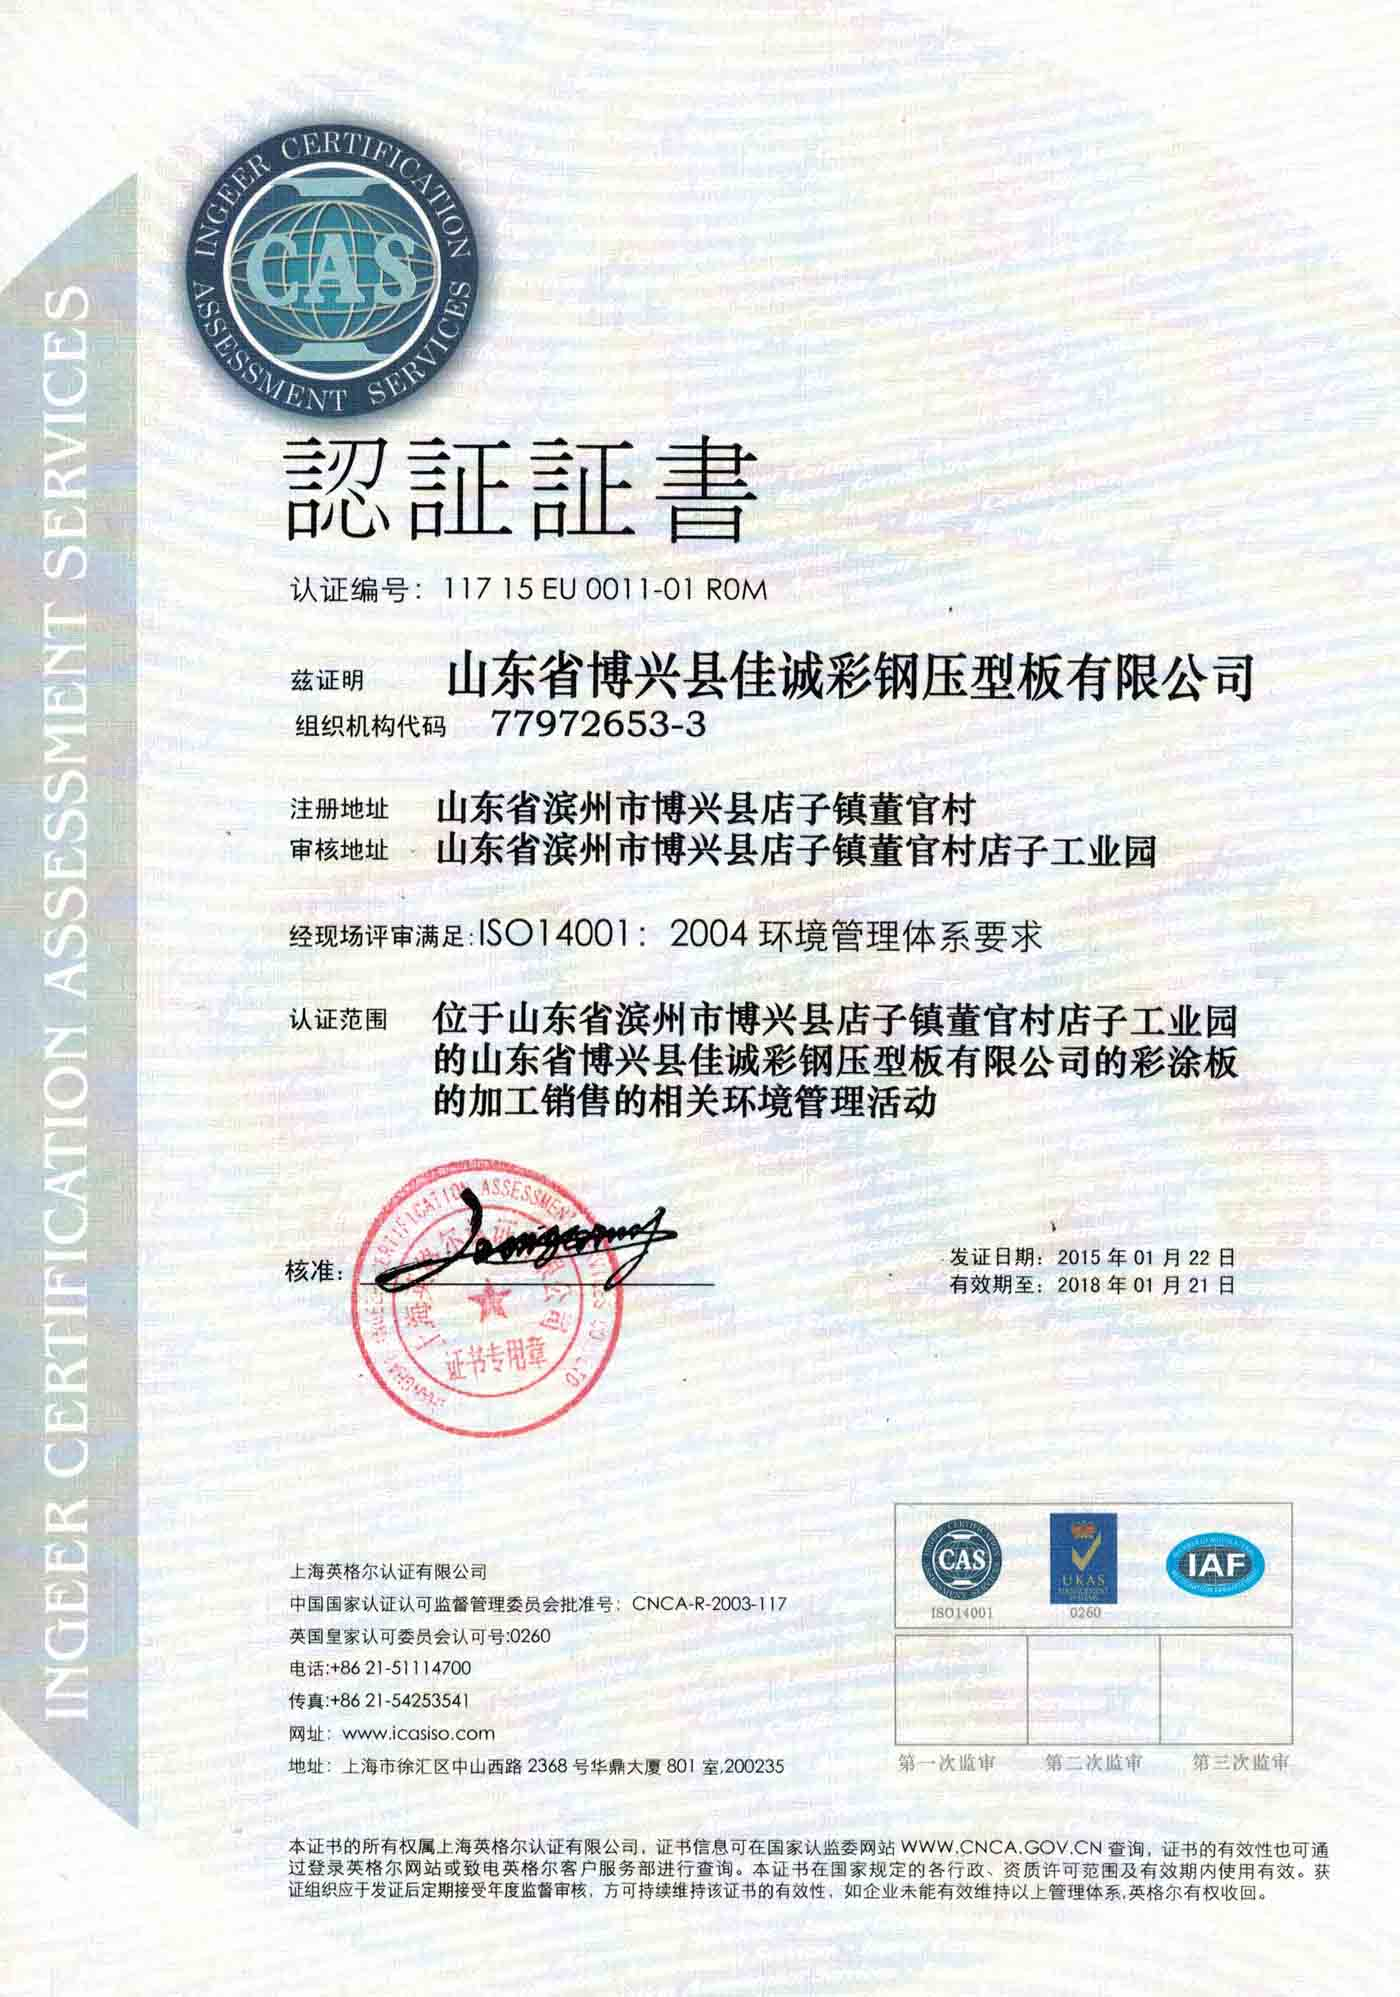 ISO14001:2004 Certificate of Registration (Chinese Version)